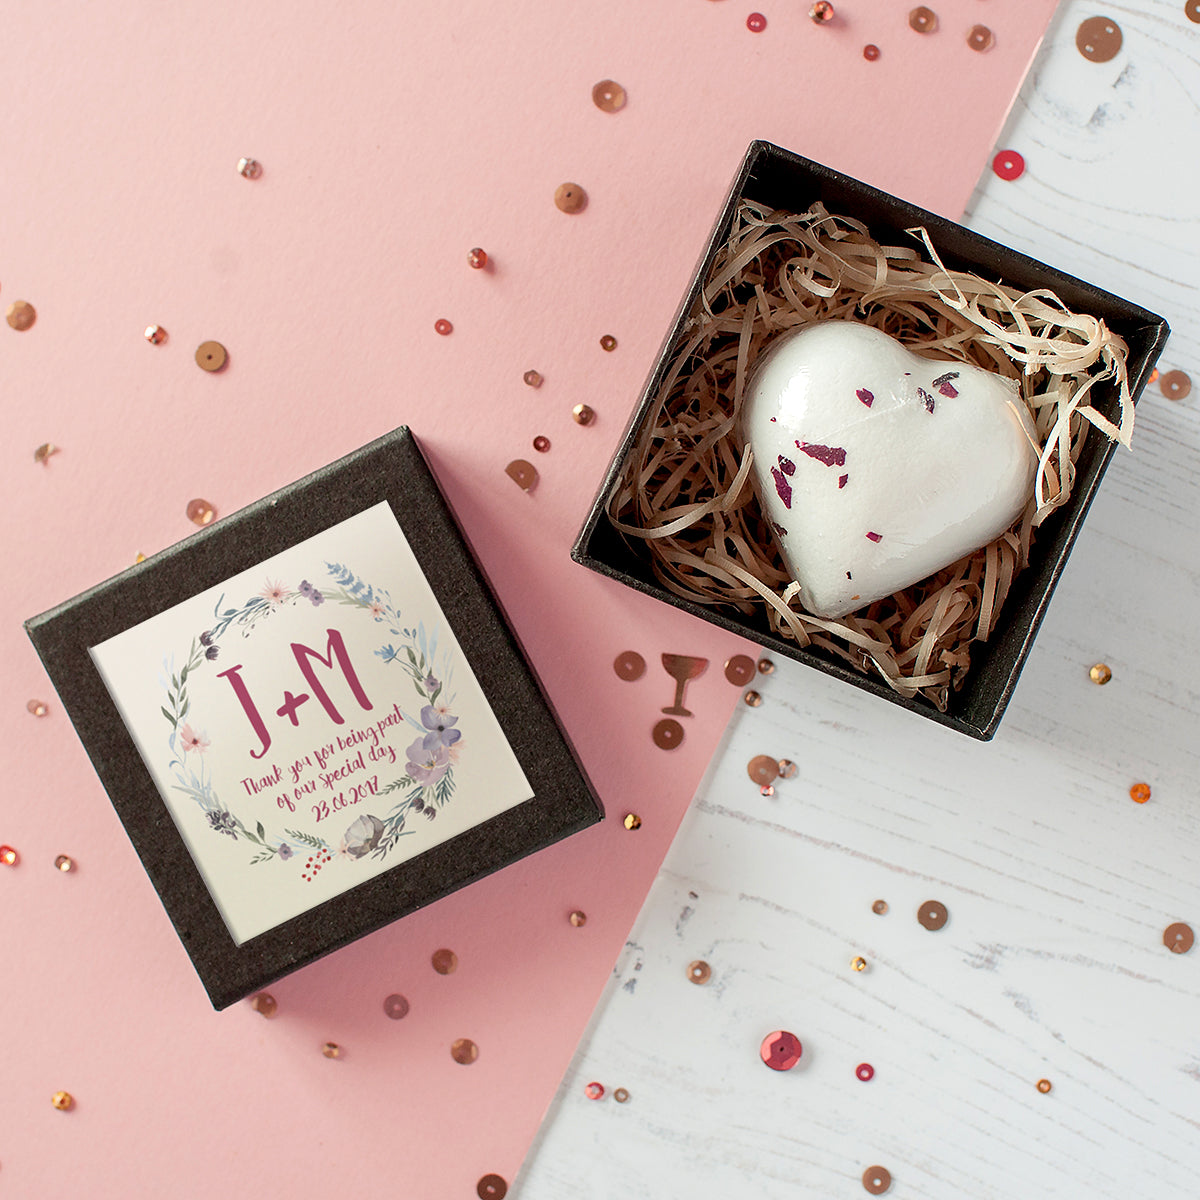 Personalised Wedding Favour Heart Bath Bomb In Gift Box | The Little ...